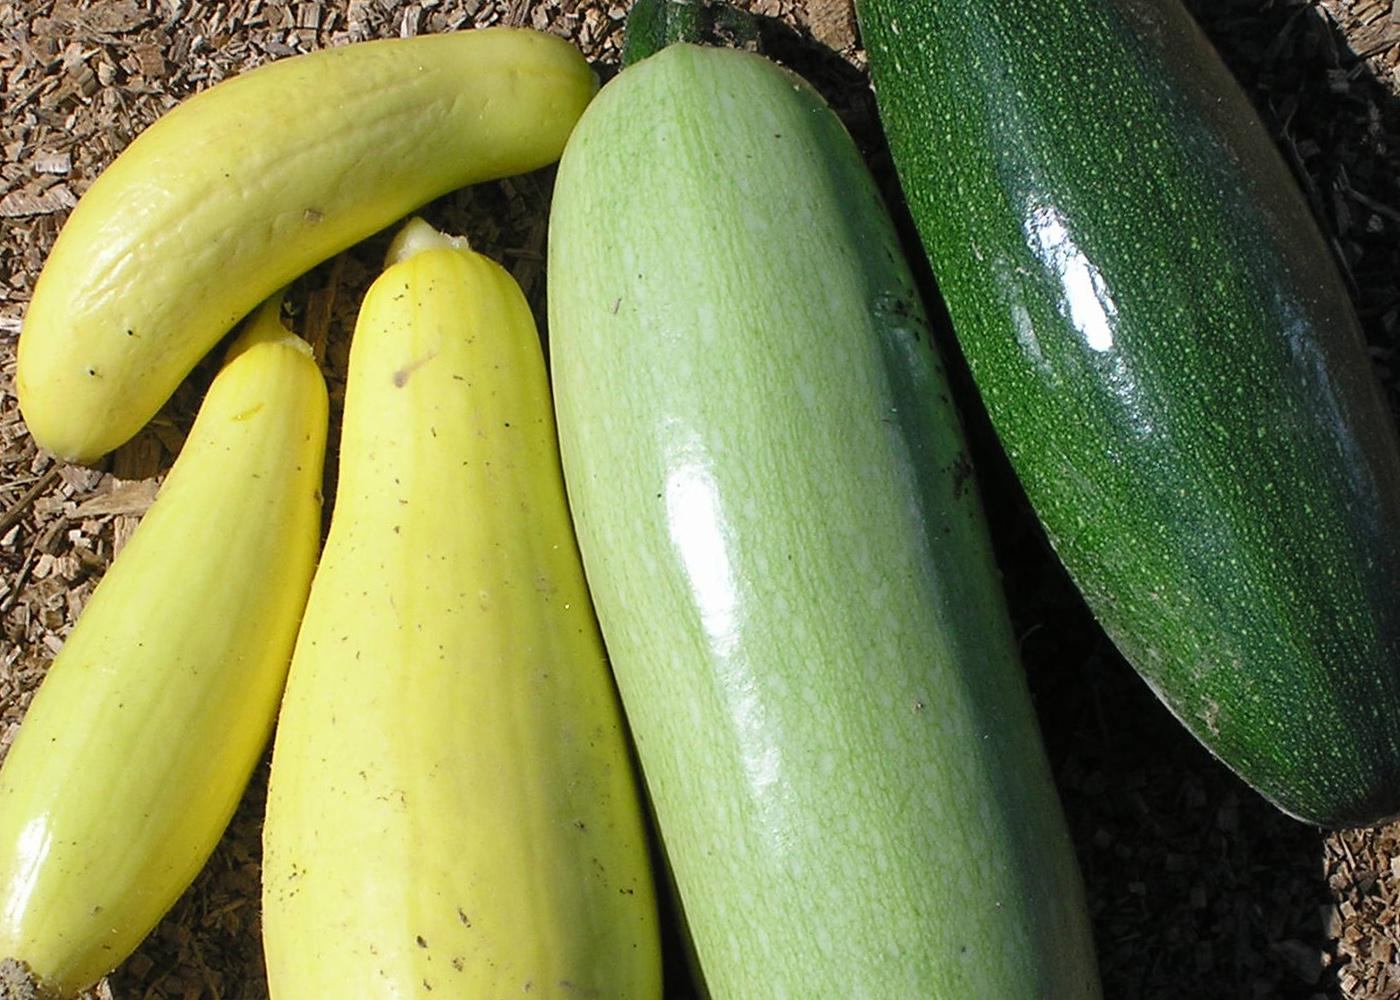 Resolve to grow a new vegetable this year. If you like traditional zucchinis, try growing a new variety in 2012. (Photo by Gary Bachman)